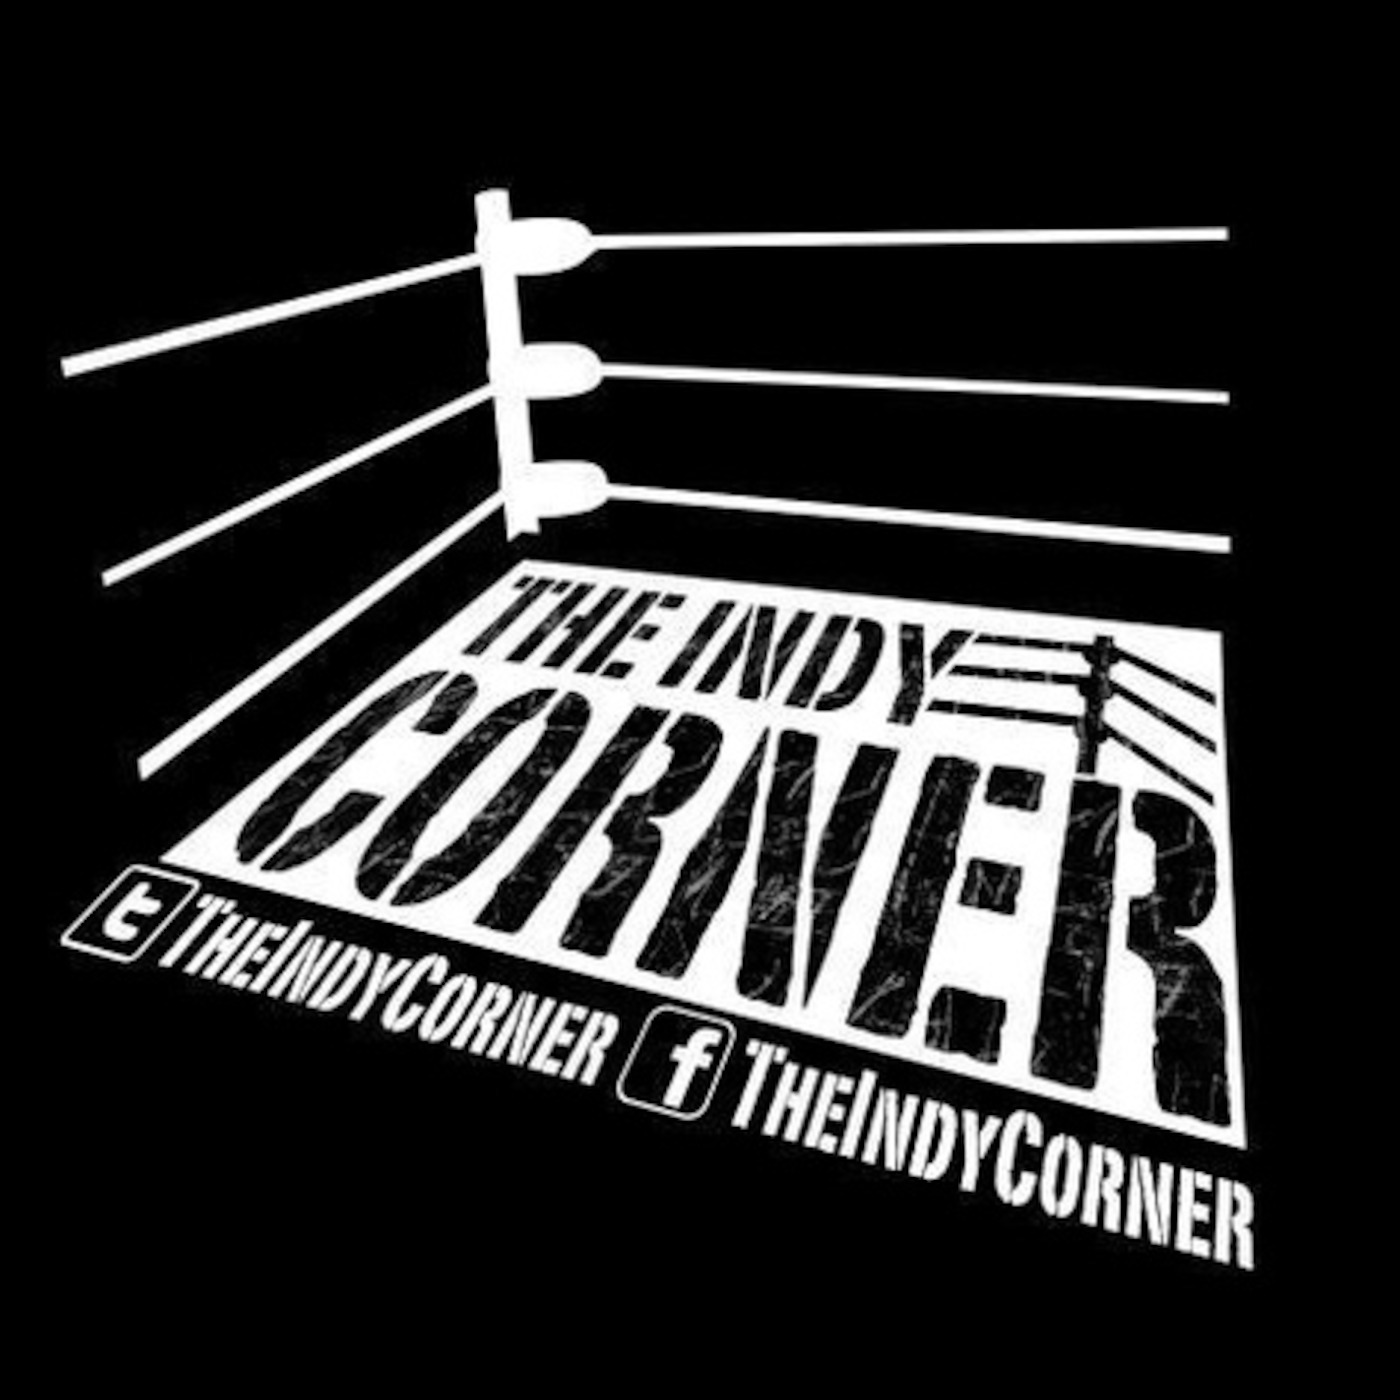 The Indy Corner Wrestling Podcast